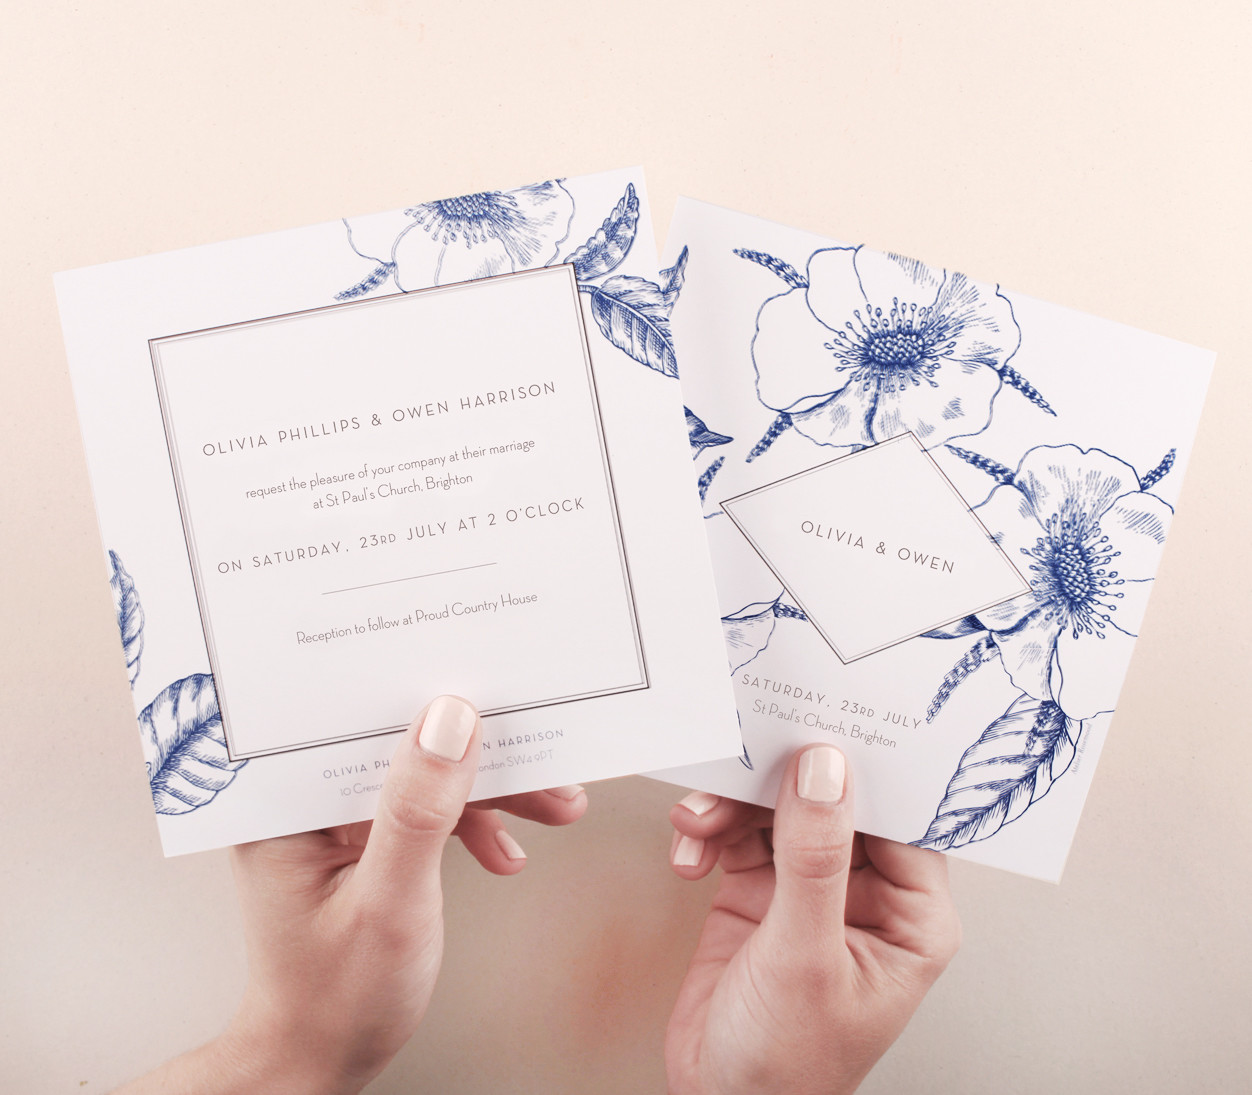 Wedding stationery quality control